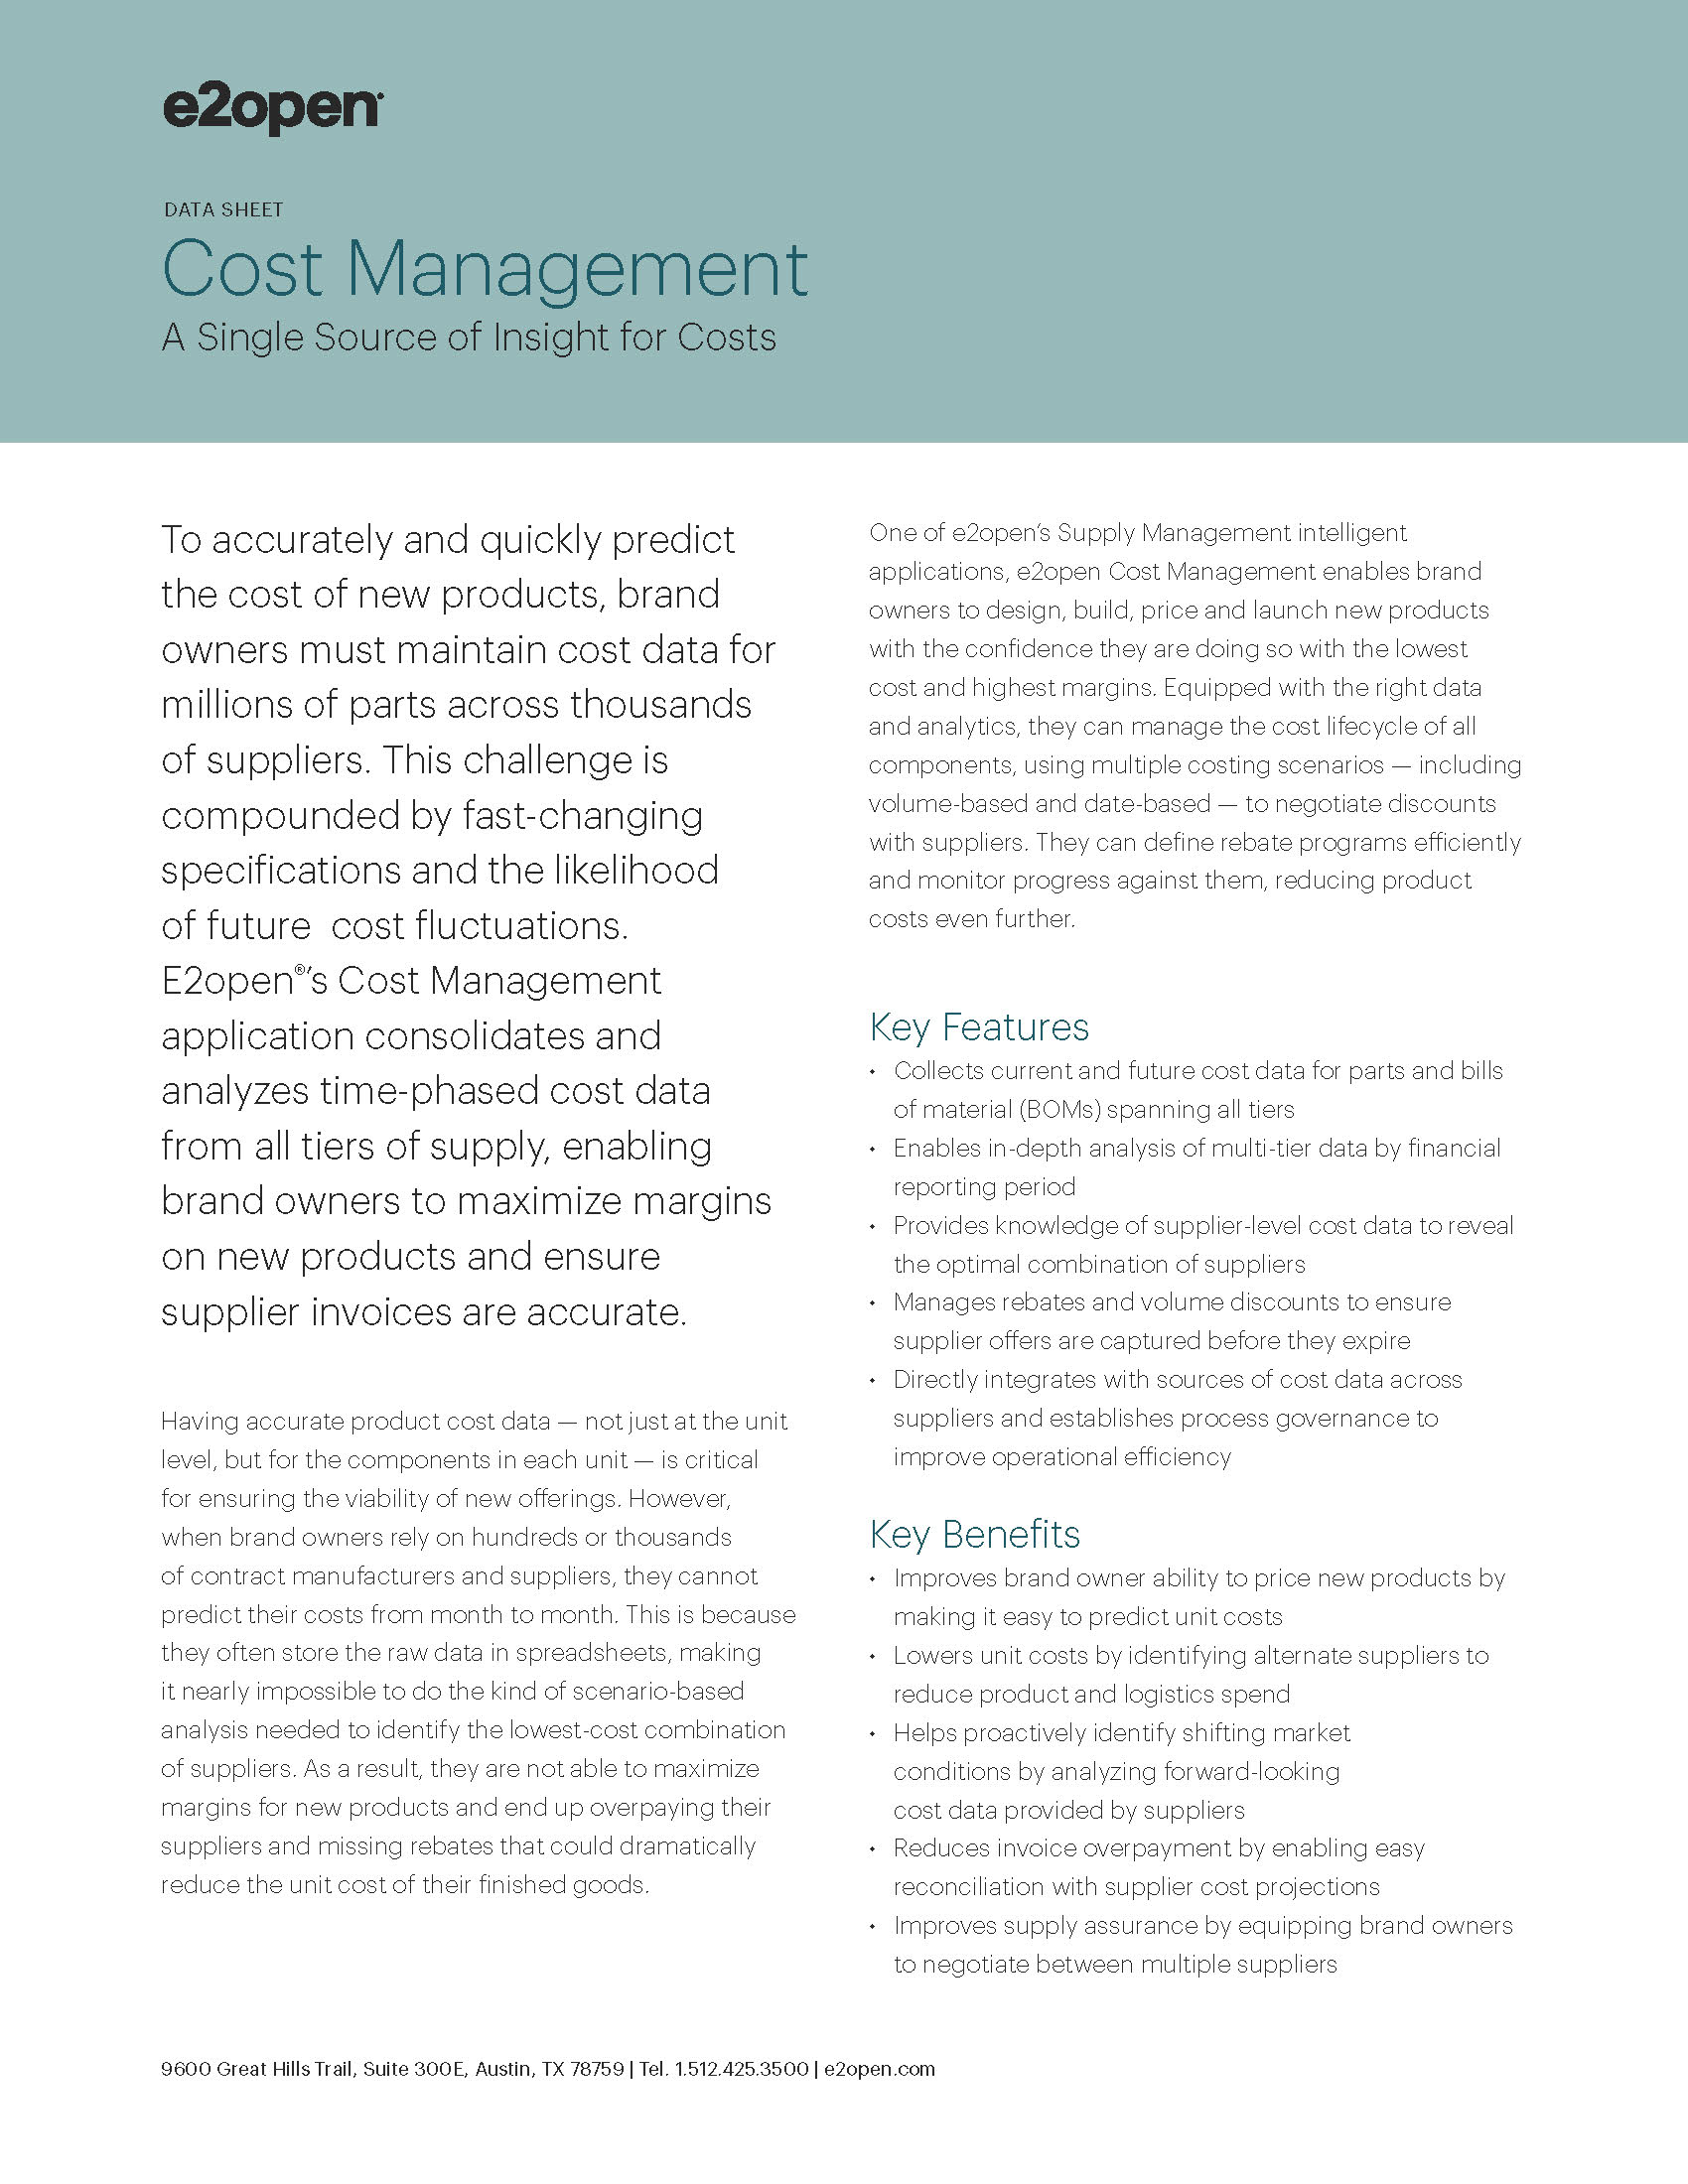 E2open Cost Management Data Sheet